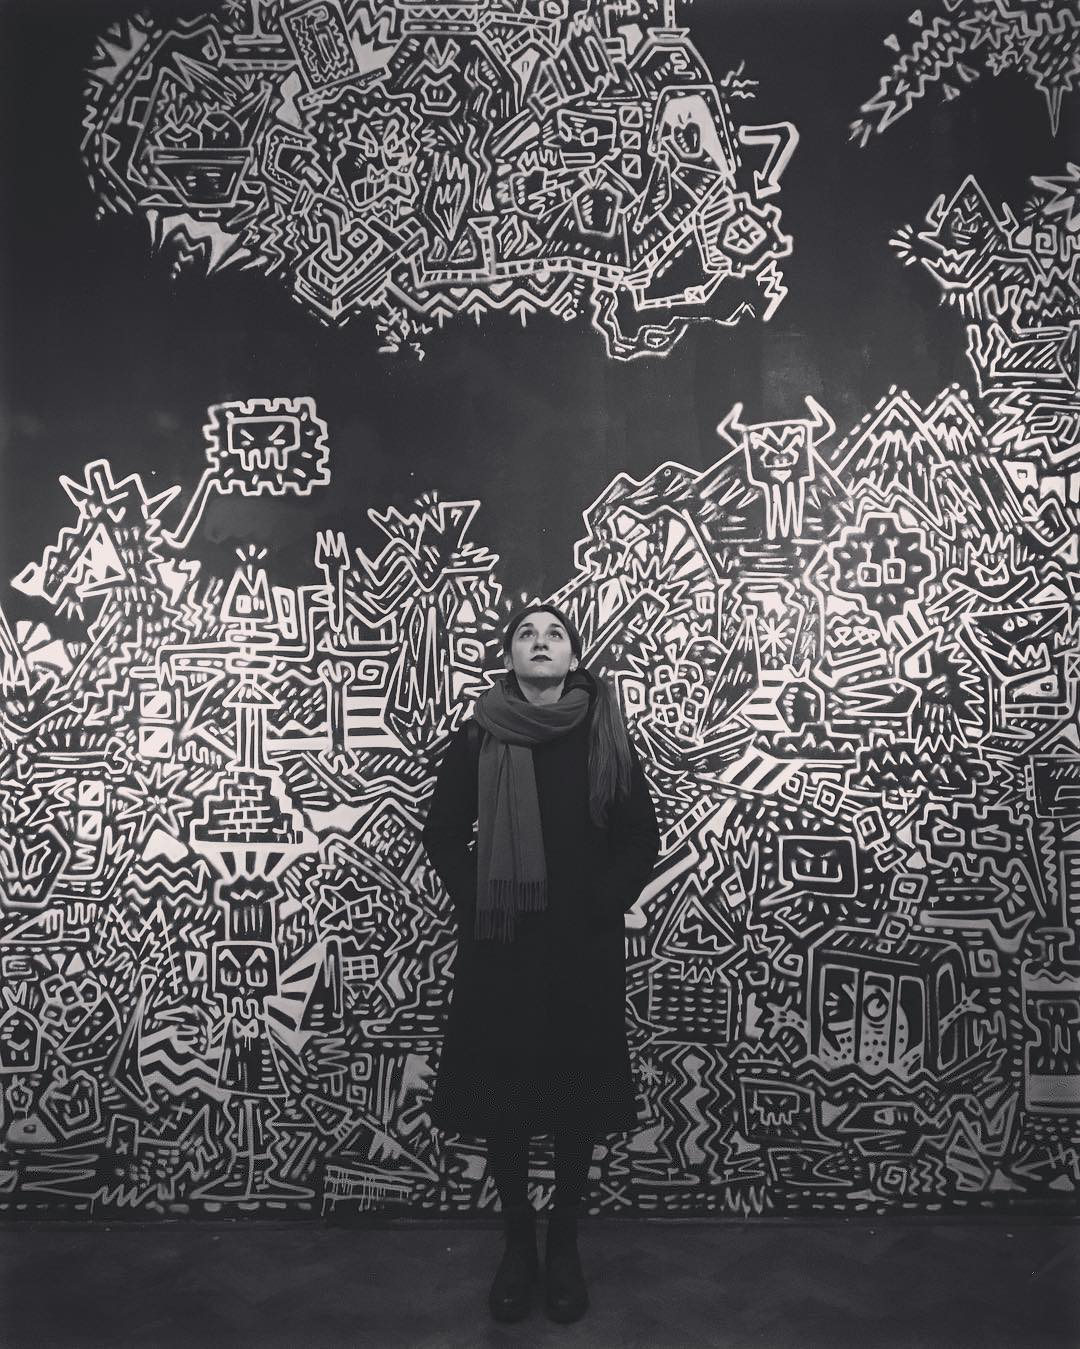 #thedoodleman #obsessions #hoxtongallery